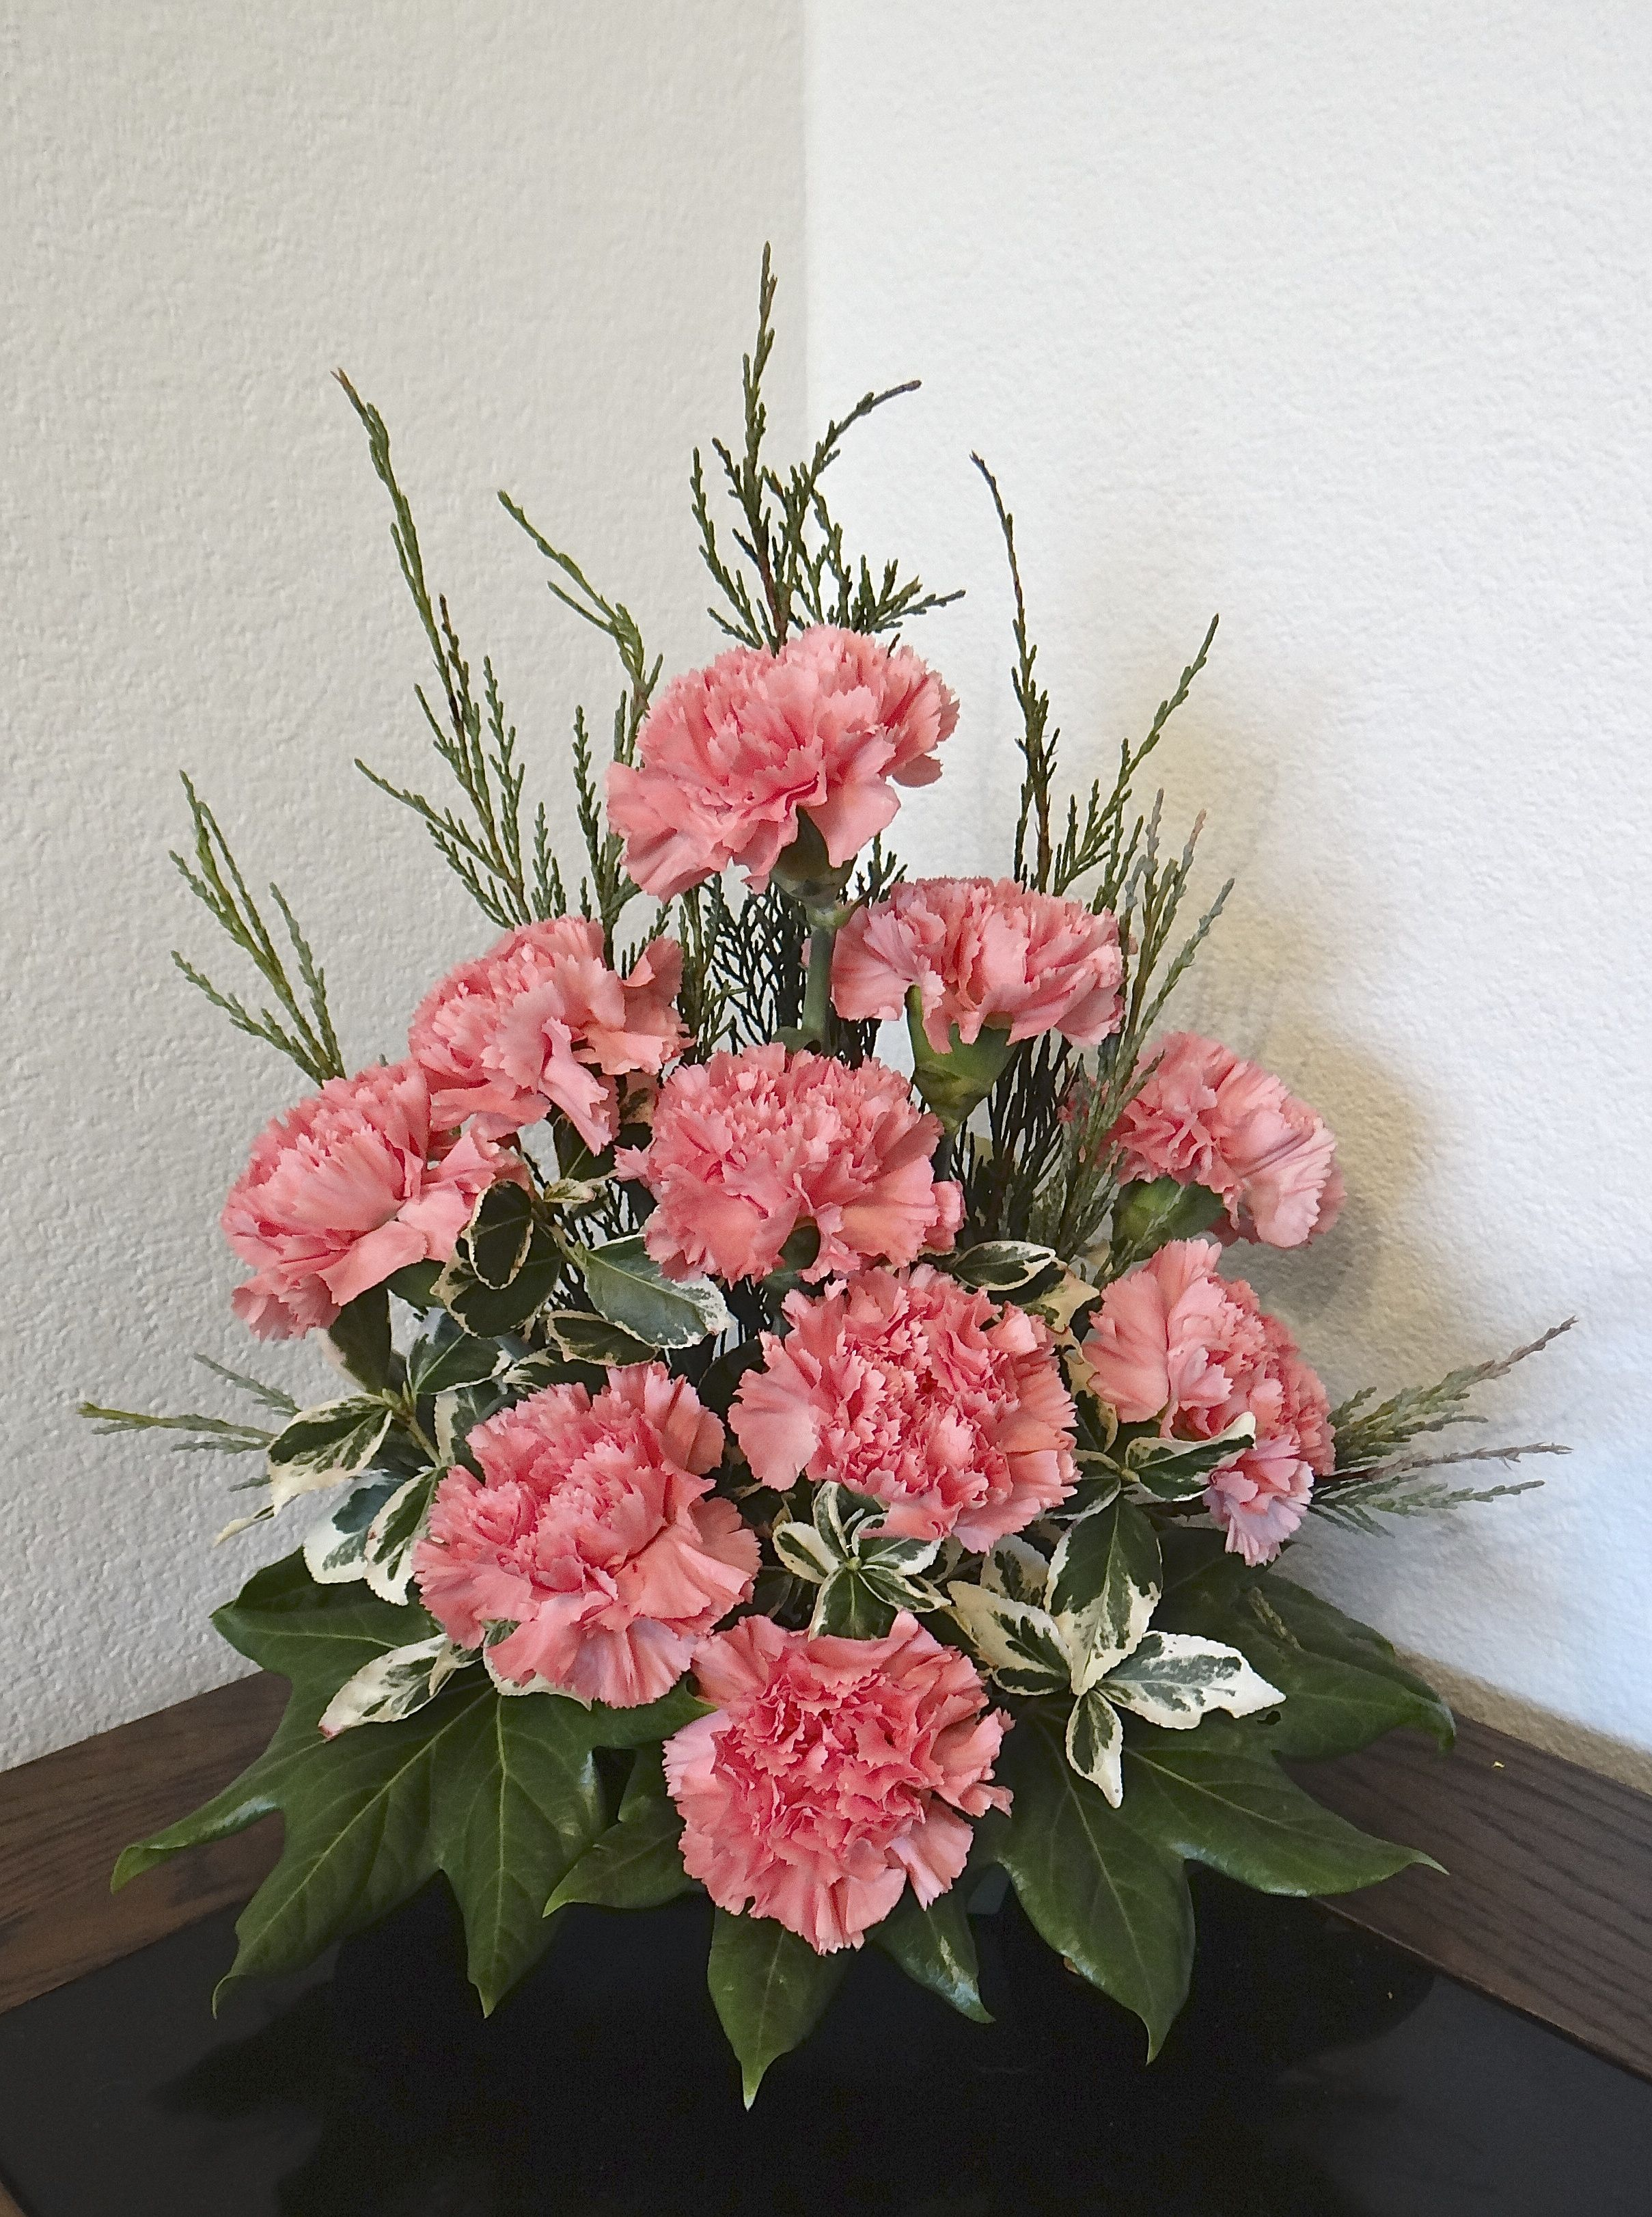 Pink Carnations With Some Fir Branches And Fatsia Leaves This